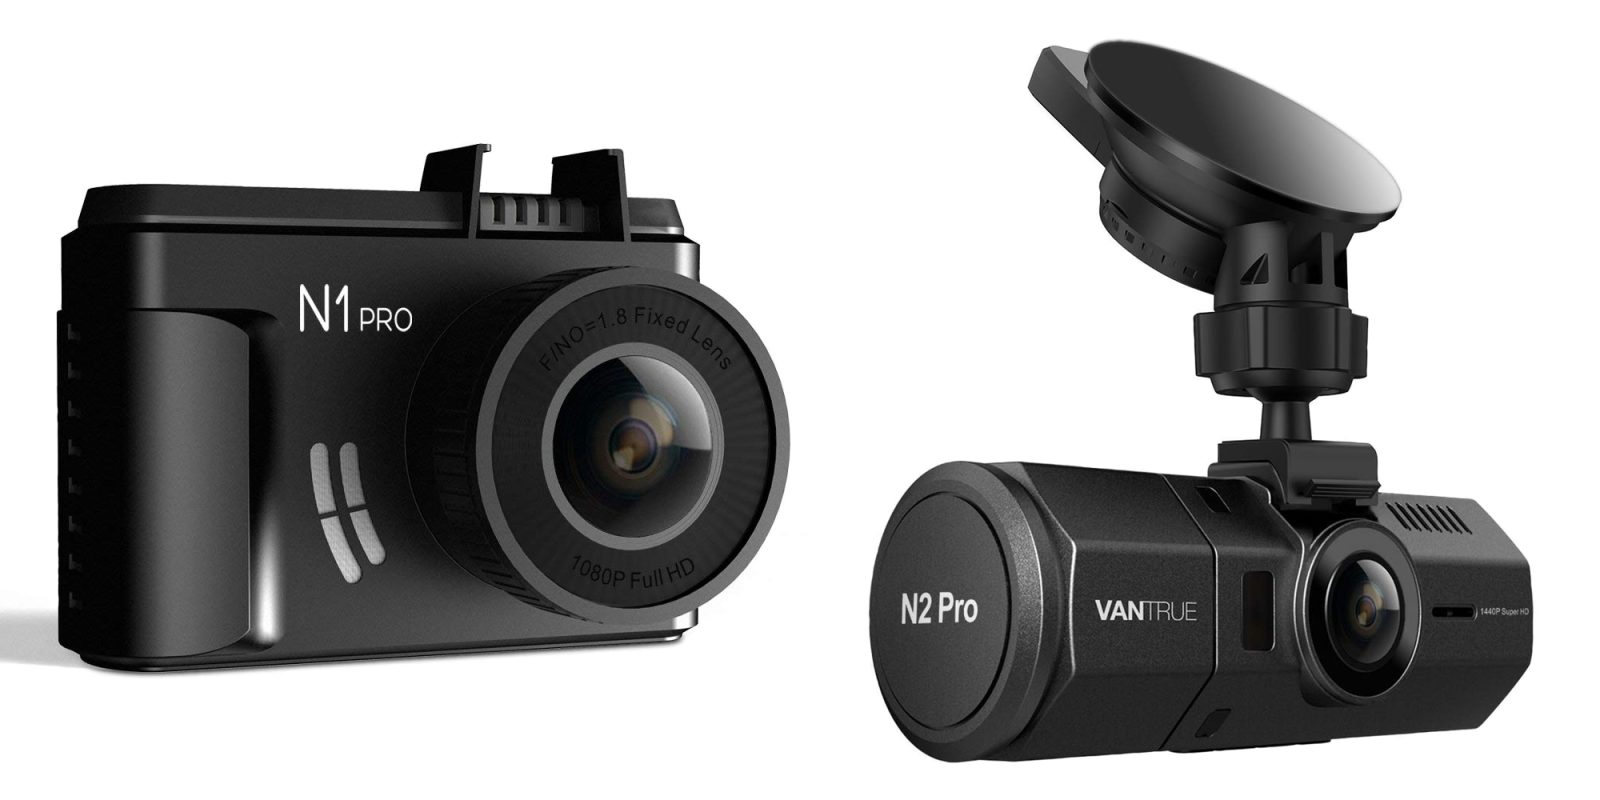 vantrue s n1 pro 1080p mini dash cam gets a 20 discount. Black Bedroom Furniture Sets. Home Design Ideas